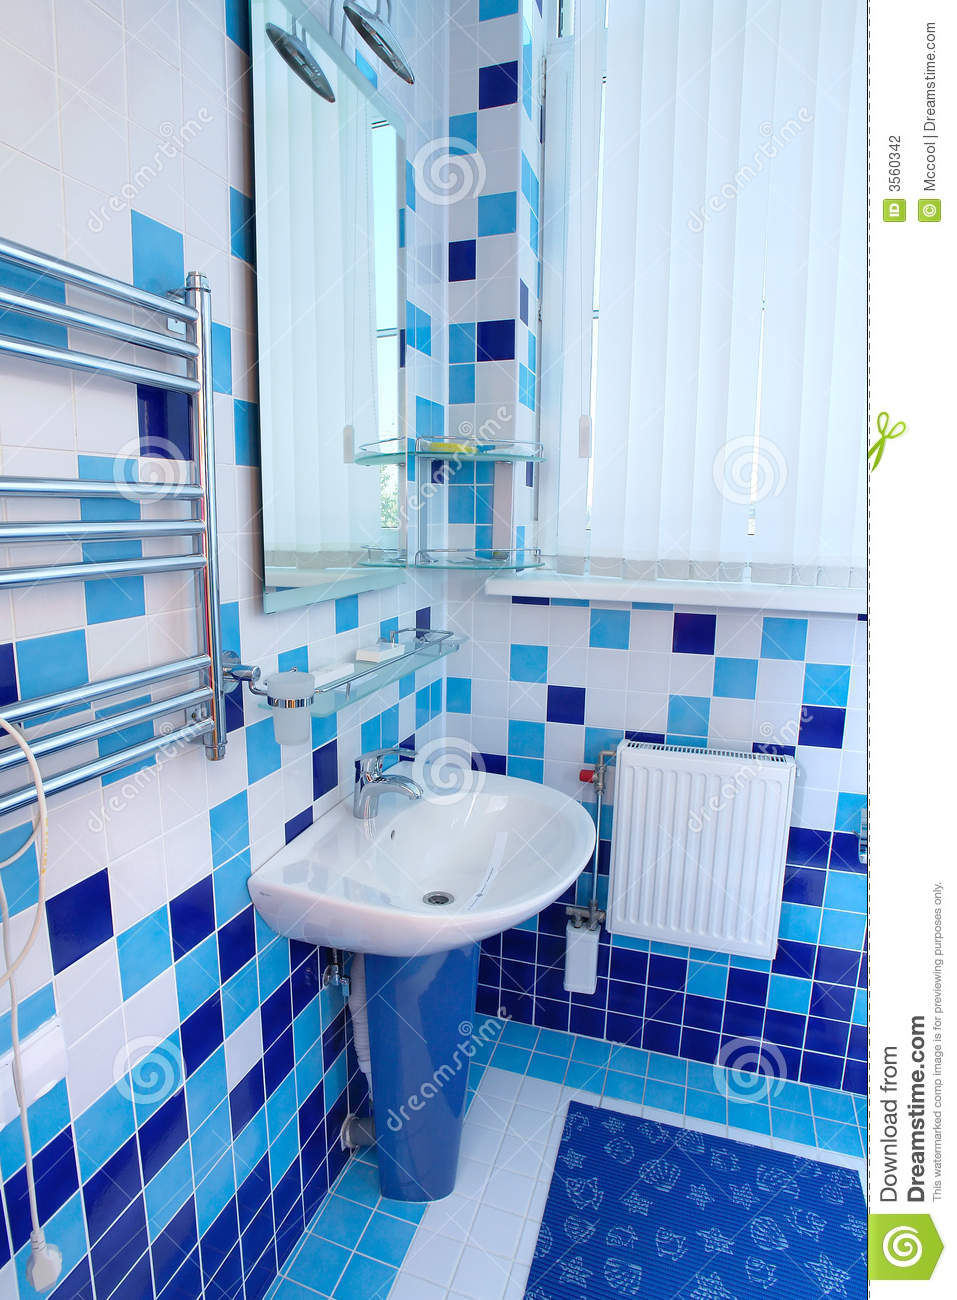 Baño Blanco Con Azul:White and Blue Bathroom